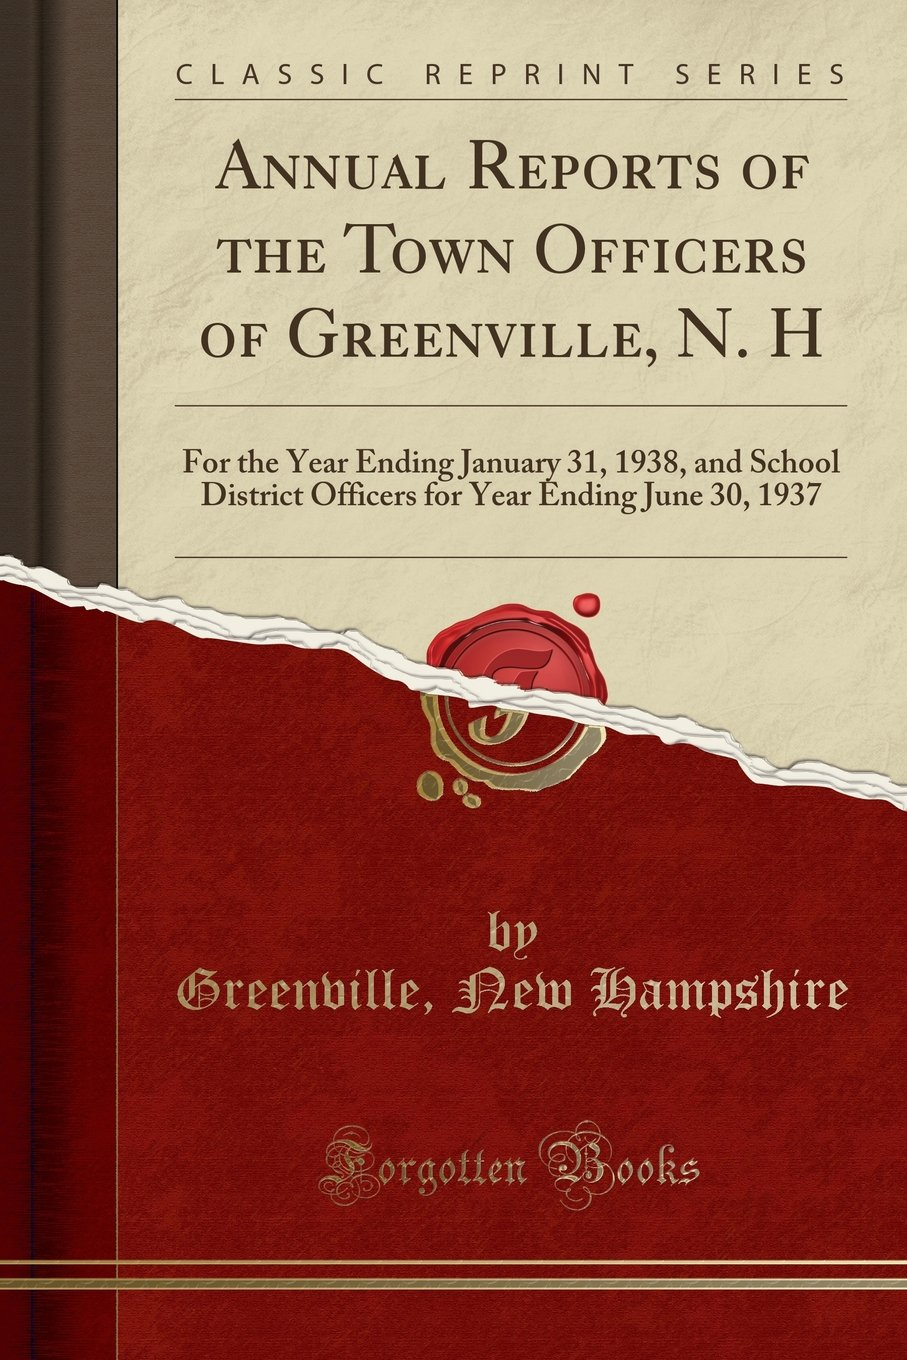 Download Annual Reports of the Town Officers of Greenville, N. H: For the Year Ending January 31, 1938, and School District Officers for Year Ending June 30, 1937 (Classic Reprint) pdf